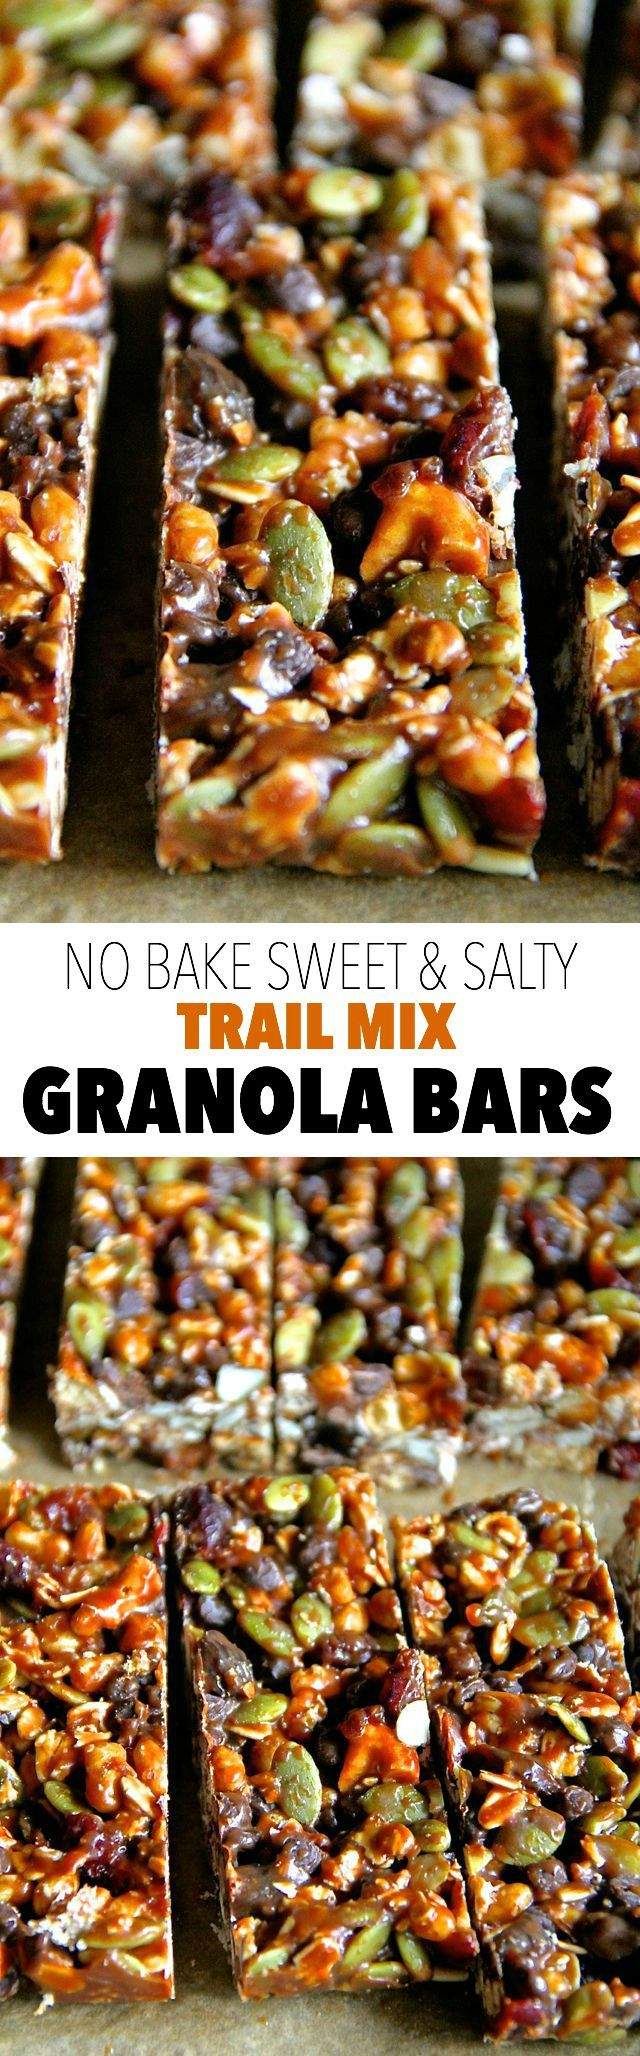 No Bake Trail Mix Granola Bars -- sweet, salty, chewy, and crisp, these granola bars are sure to satisfy any craving! || #glutenfree #vegan #backtoschool #lunchbox #snack